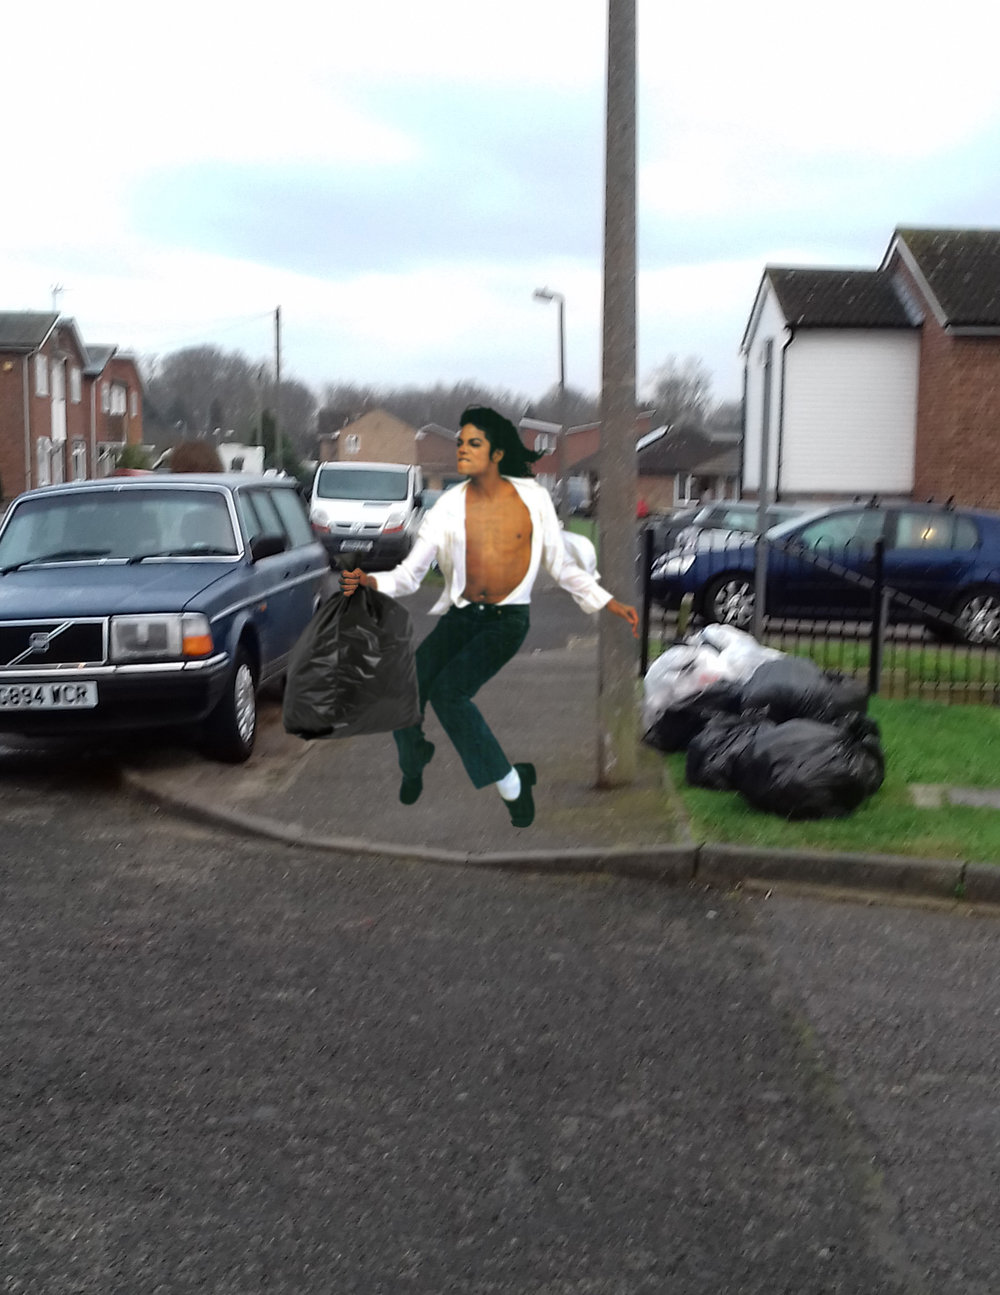 Spotted earlier today, Mister Jackson puts the bins out